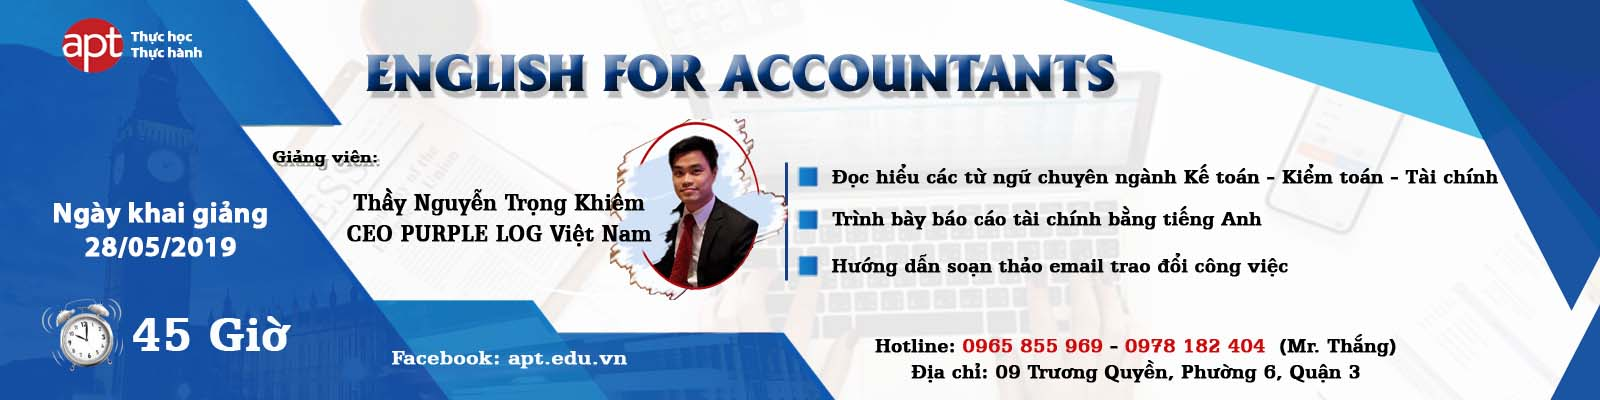 English for Accountants